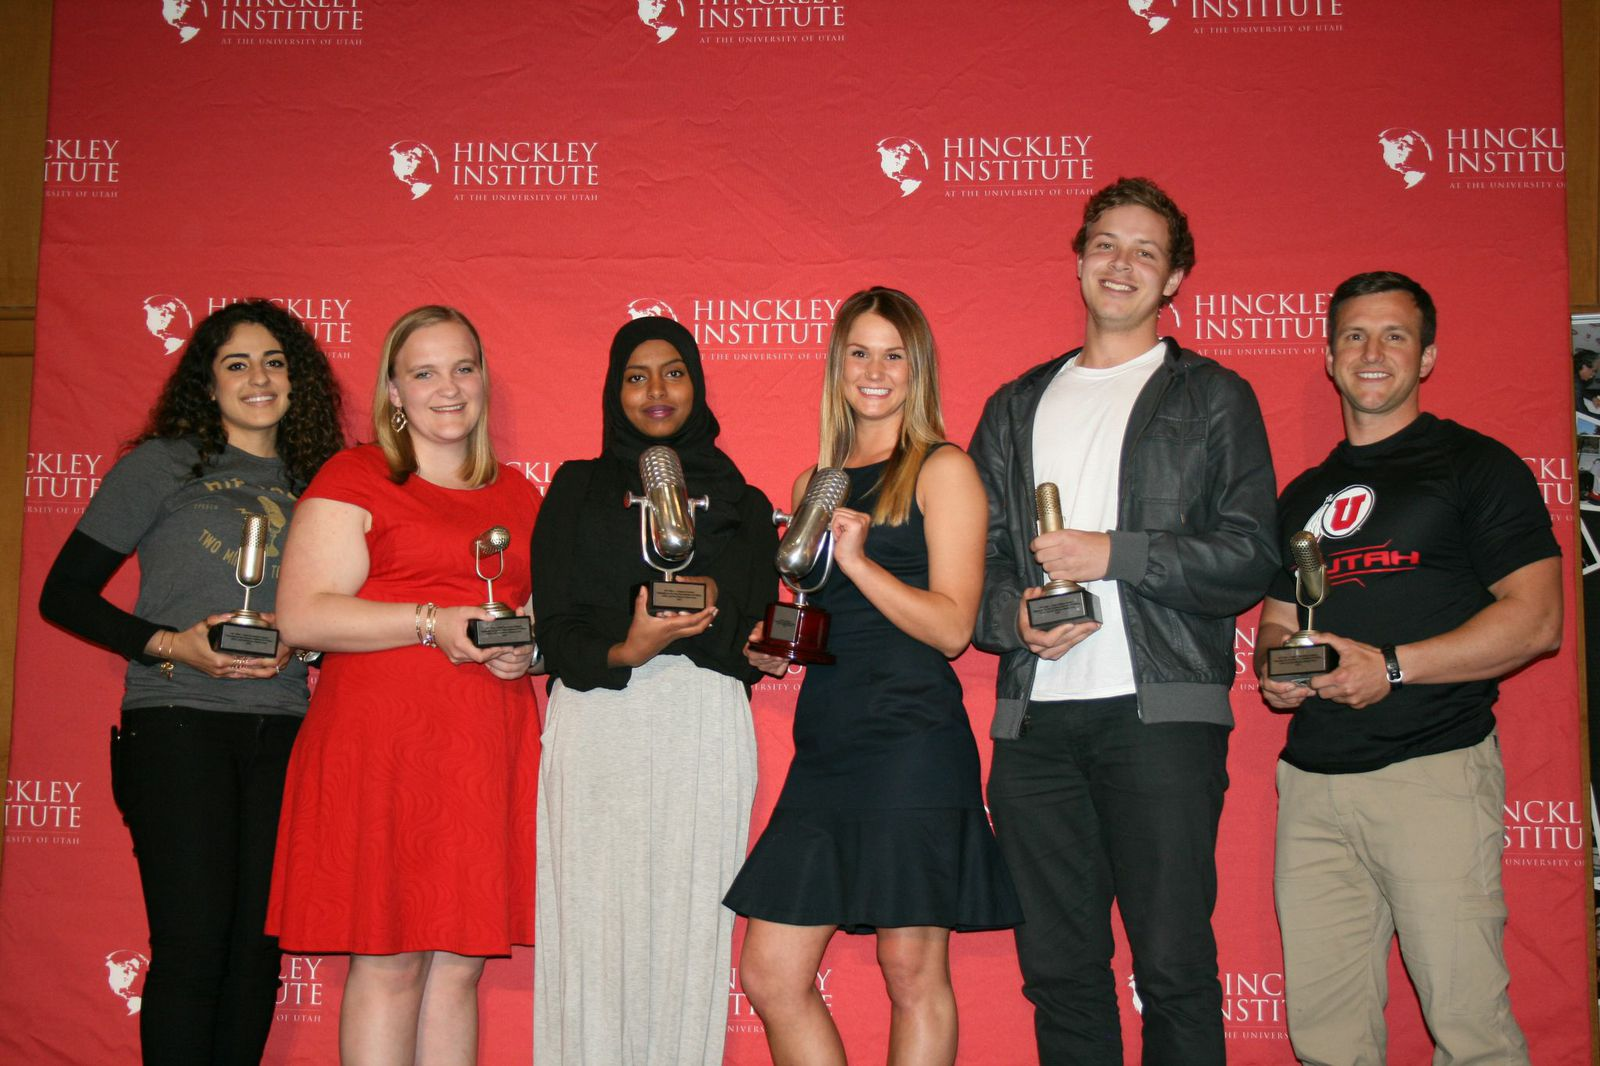 The winners from Left to Right: Nora Abu Dan, Rachael Palmer, Sabrina Abdalla, Emily Glende, Devin Price, and Chaz Allen.